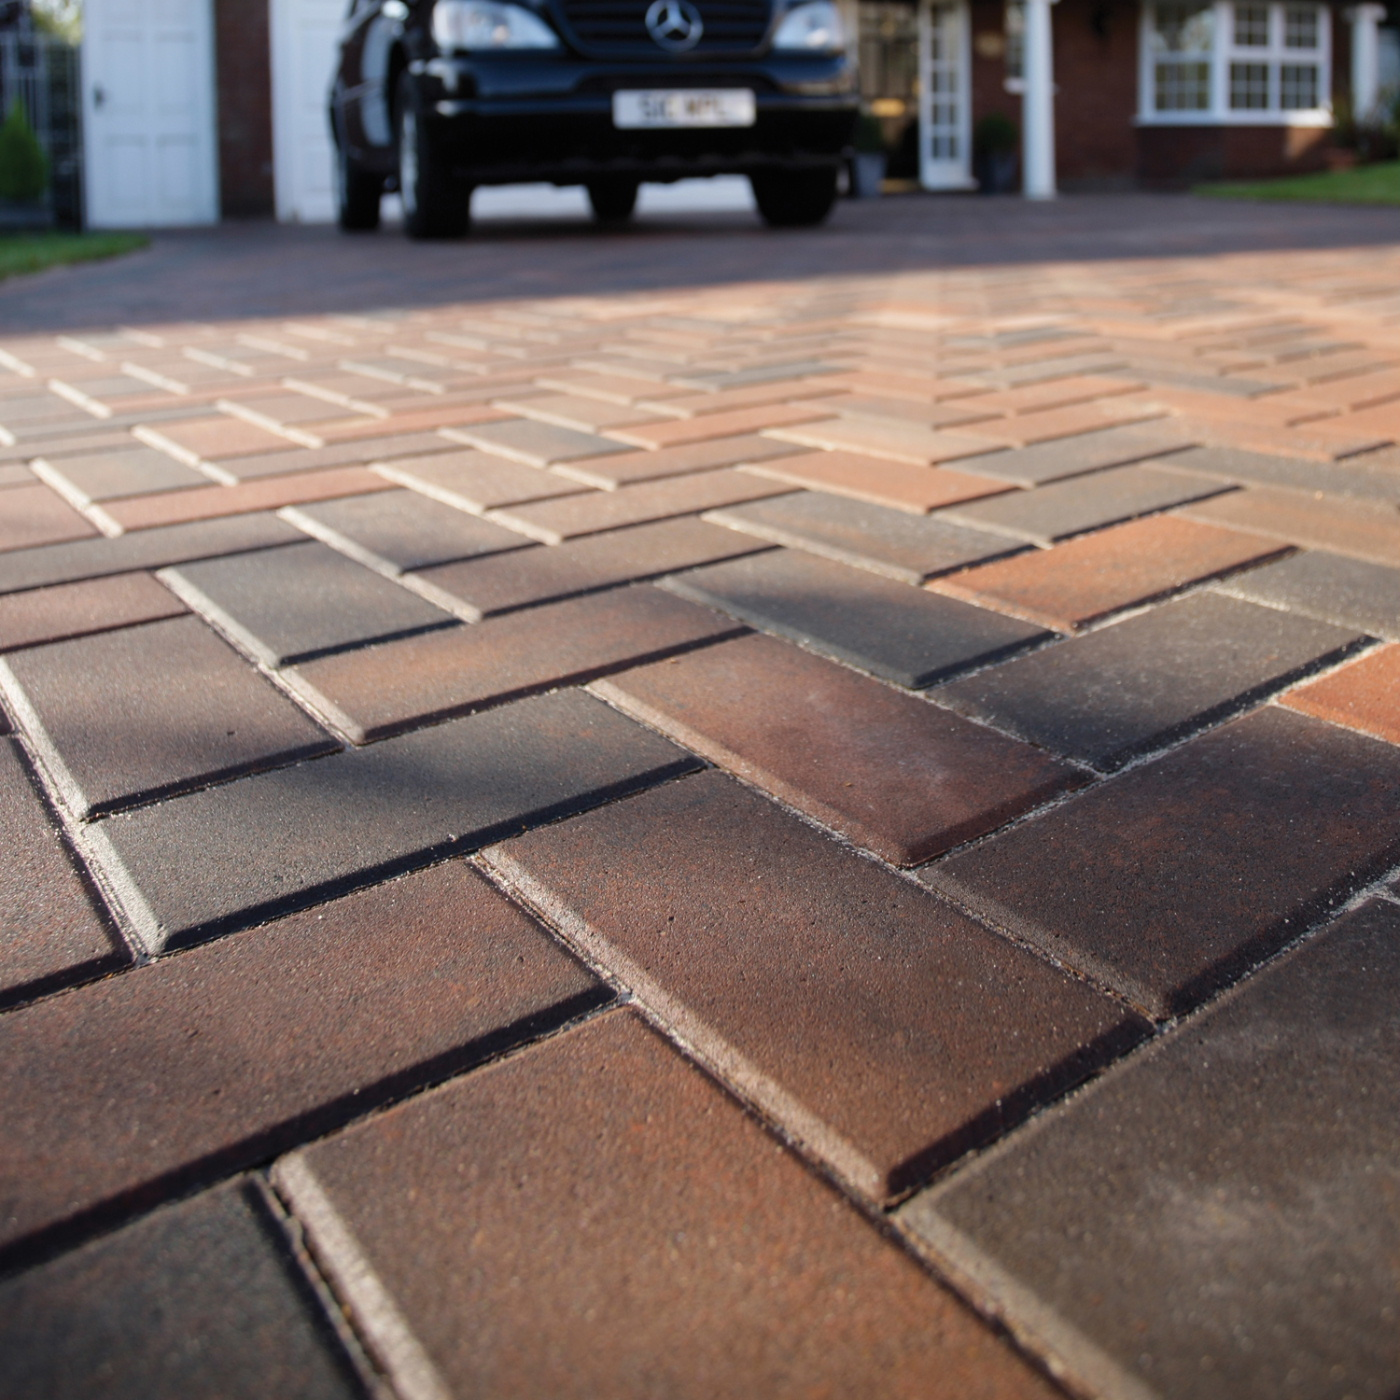 A close-up view of a terracotta coloured block paved driveway in West London